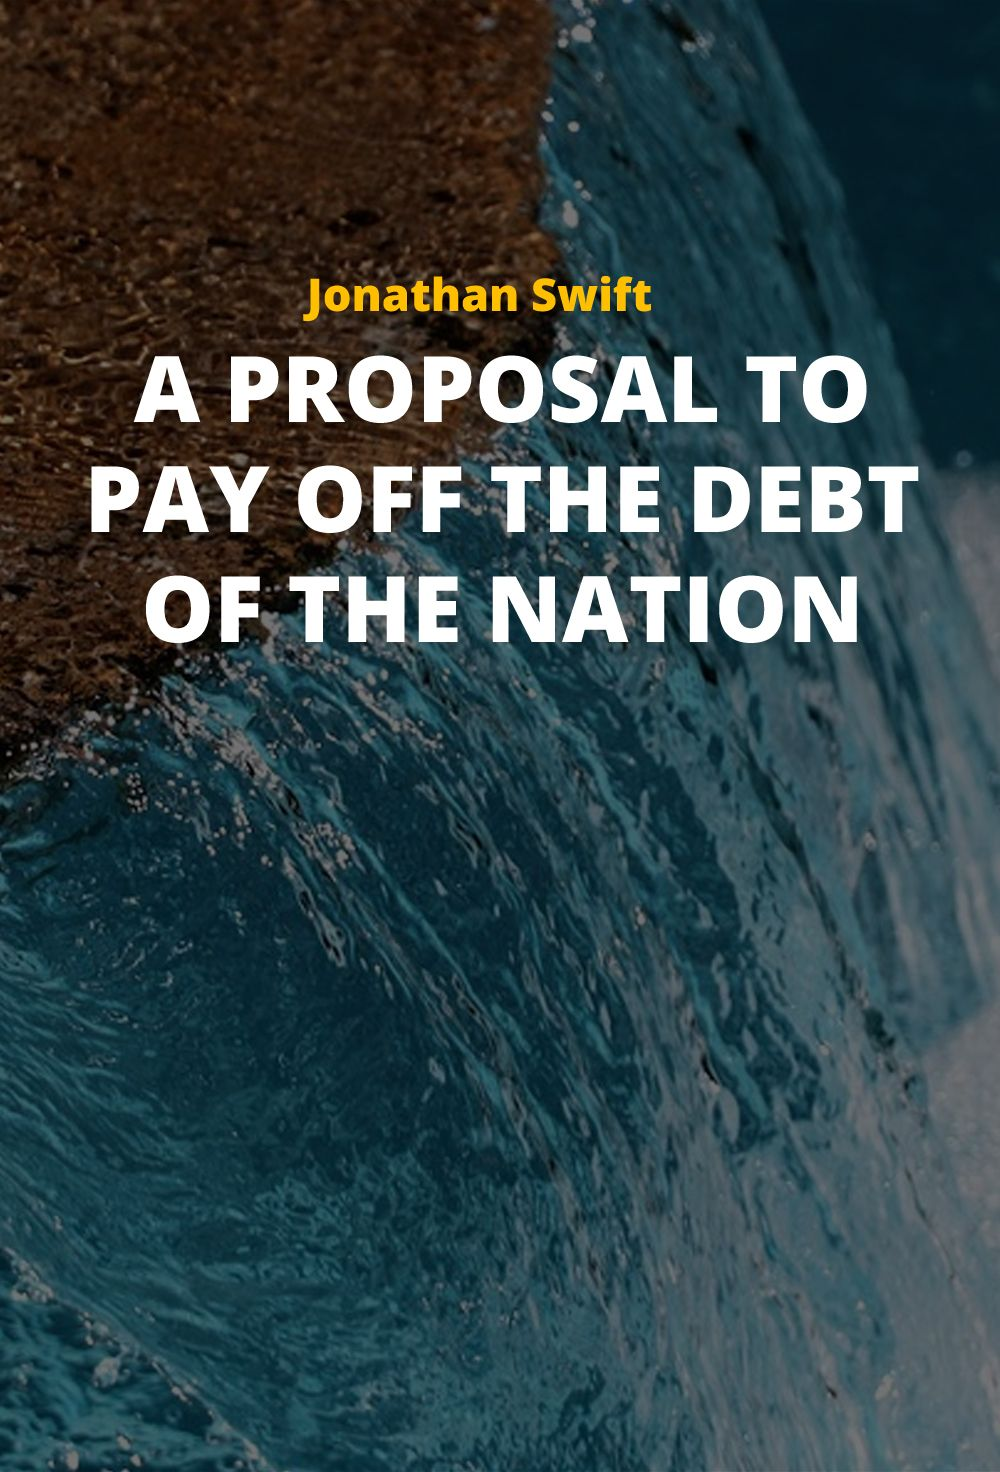 A Proposal to Pay Off the Debt of the Nation